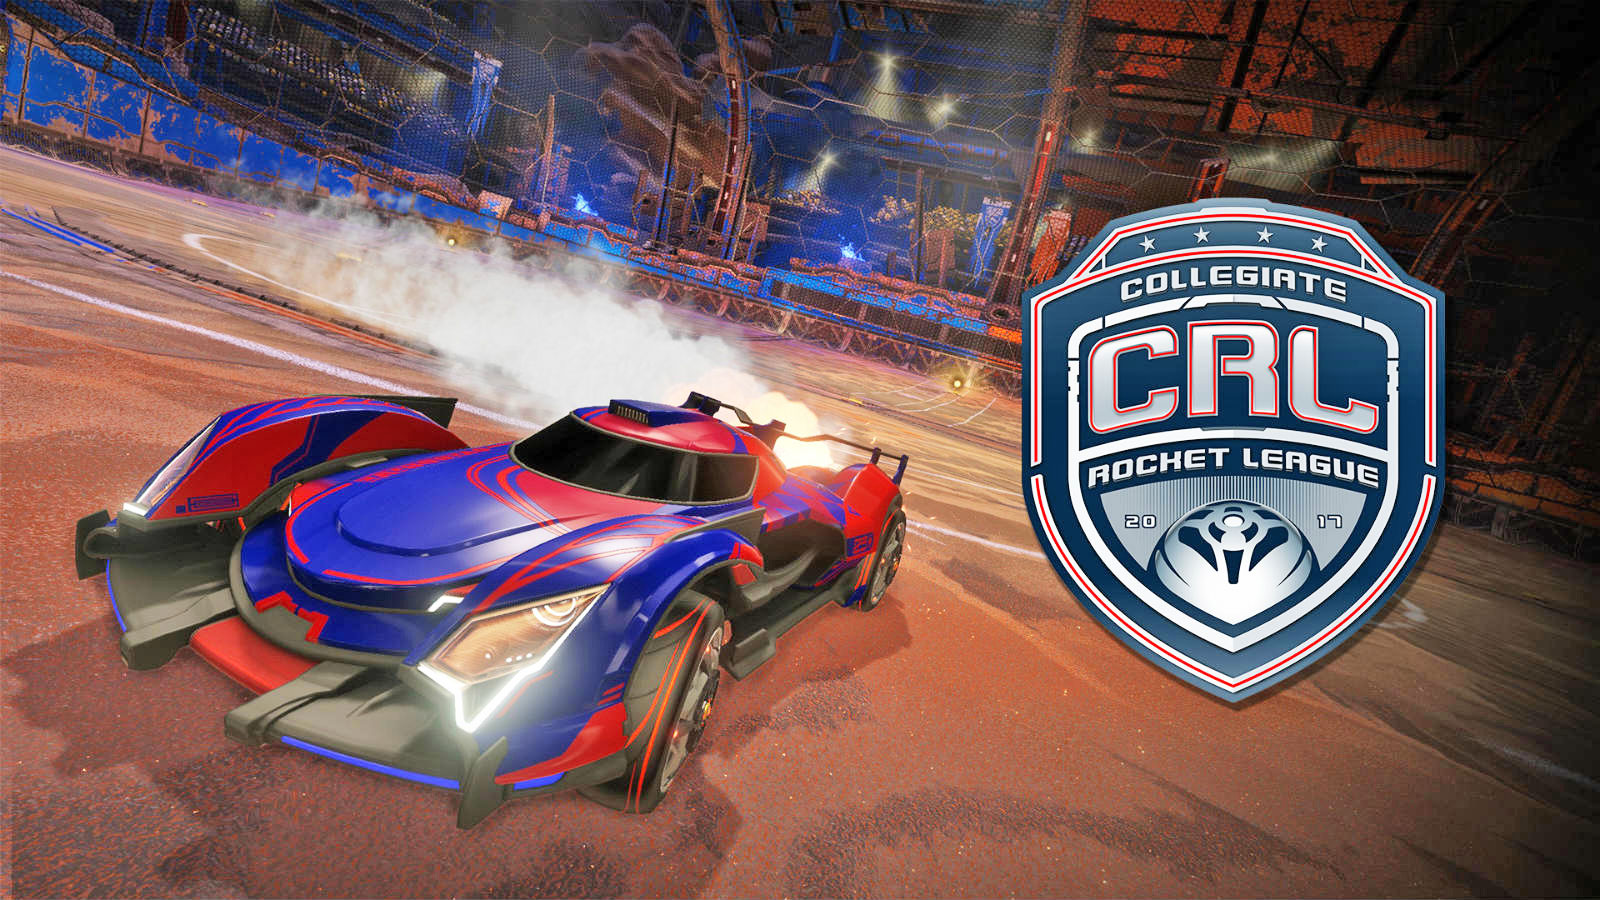 Collegiate Rocket League\' is invading campuses this fall